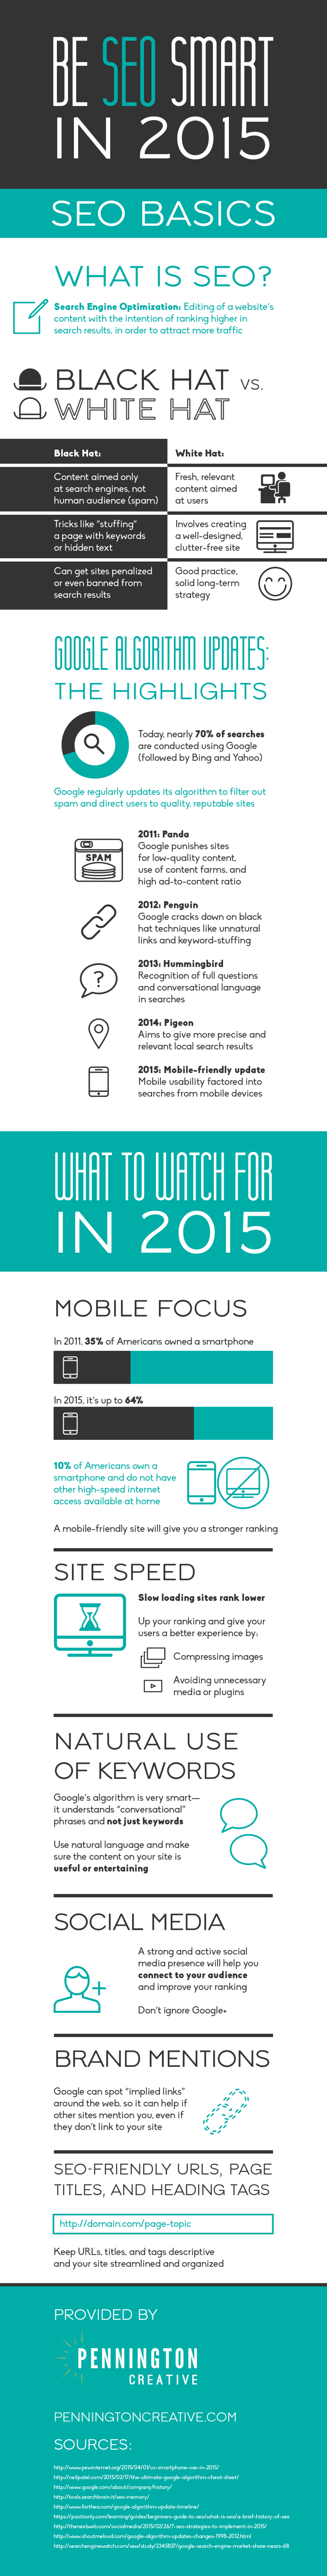 Be SEO Smart in 2015 Infographic